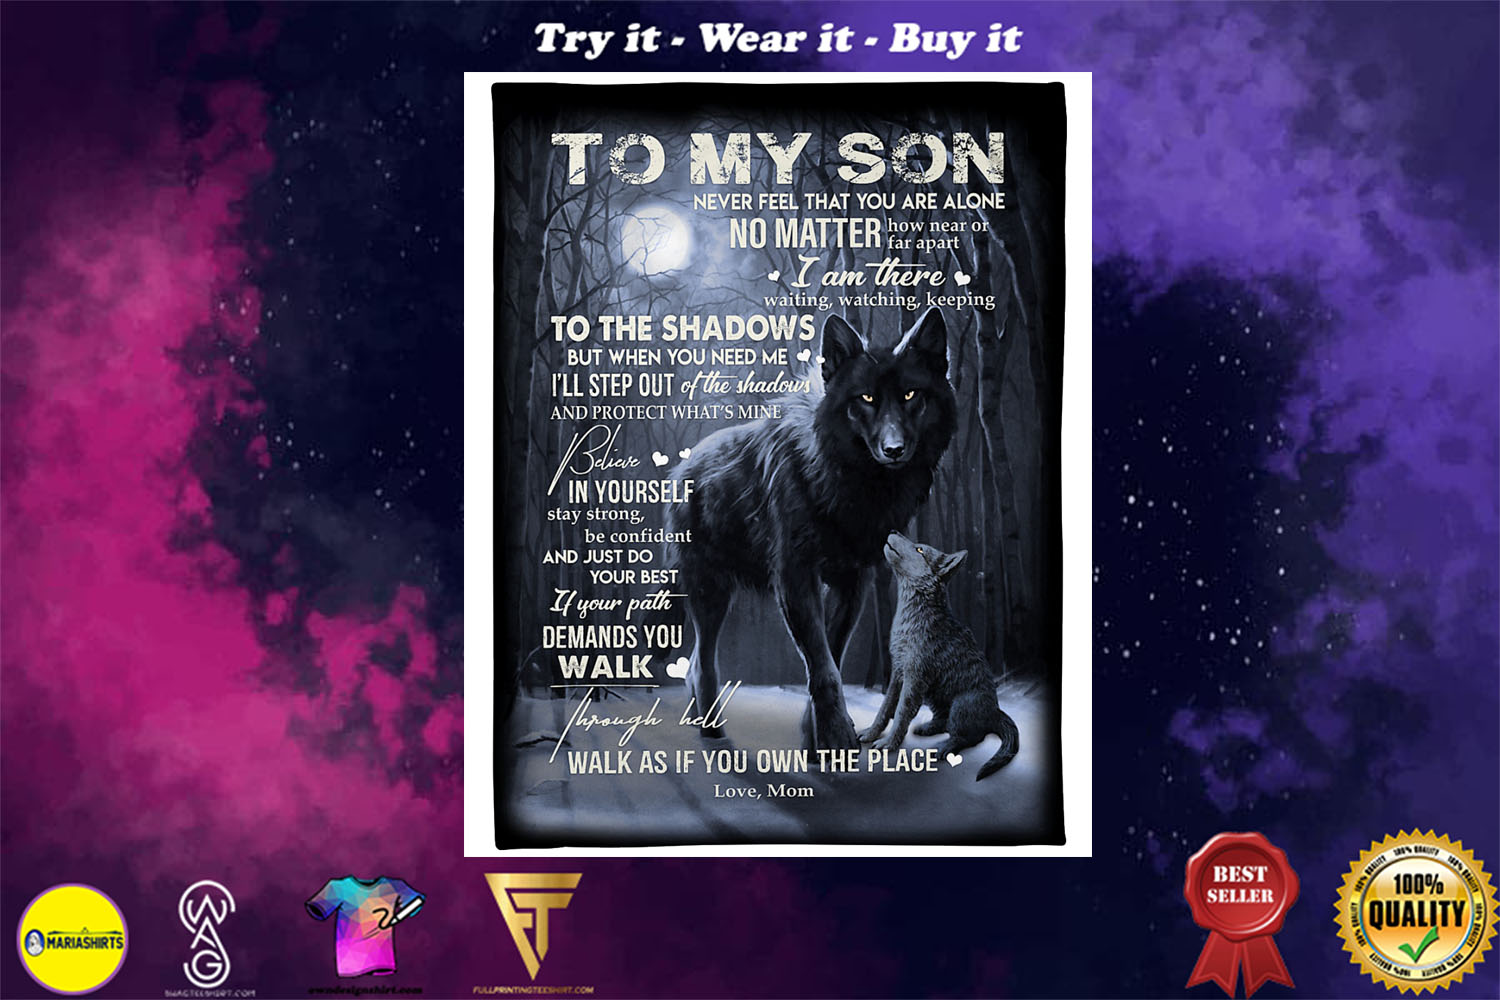 wolf to my son walk as if you own the place love mom blanket - Copy